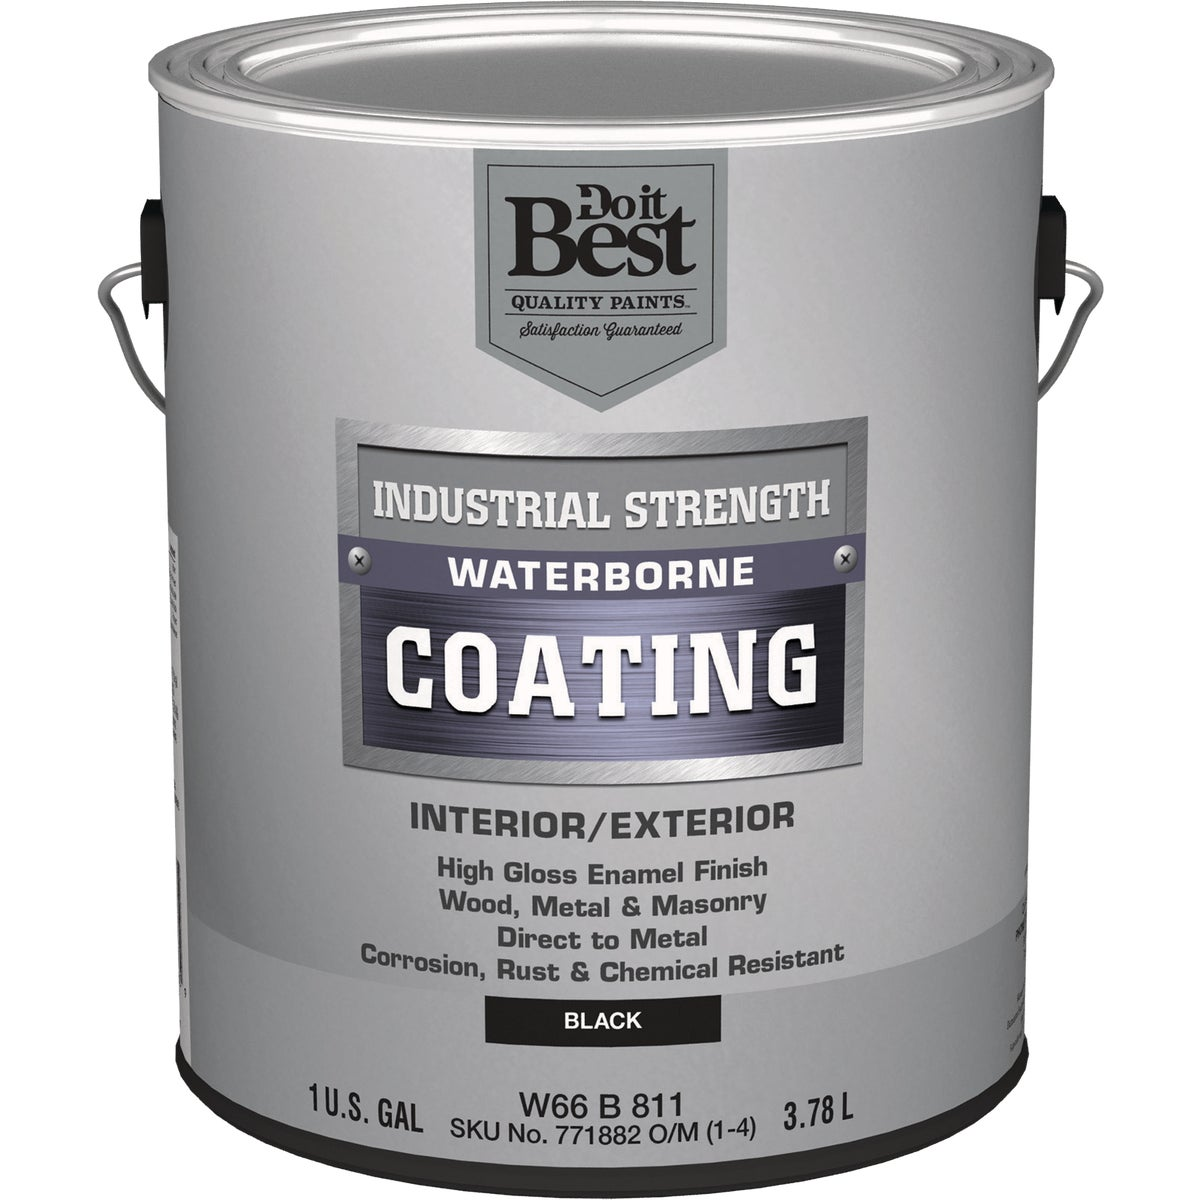 GLS BLACK LATEX PAINT - W66B00811-16 by Do it Best